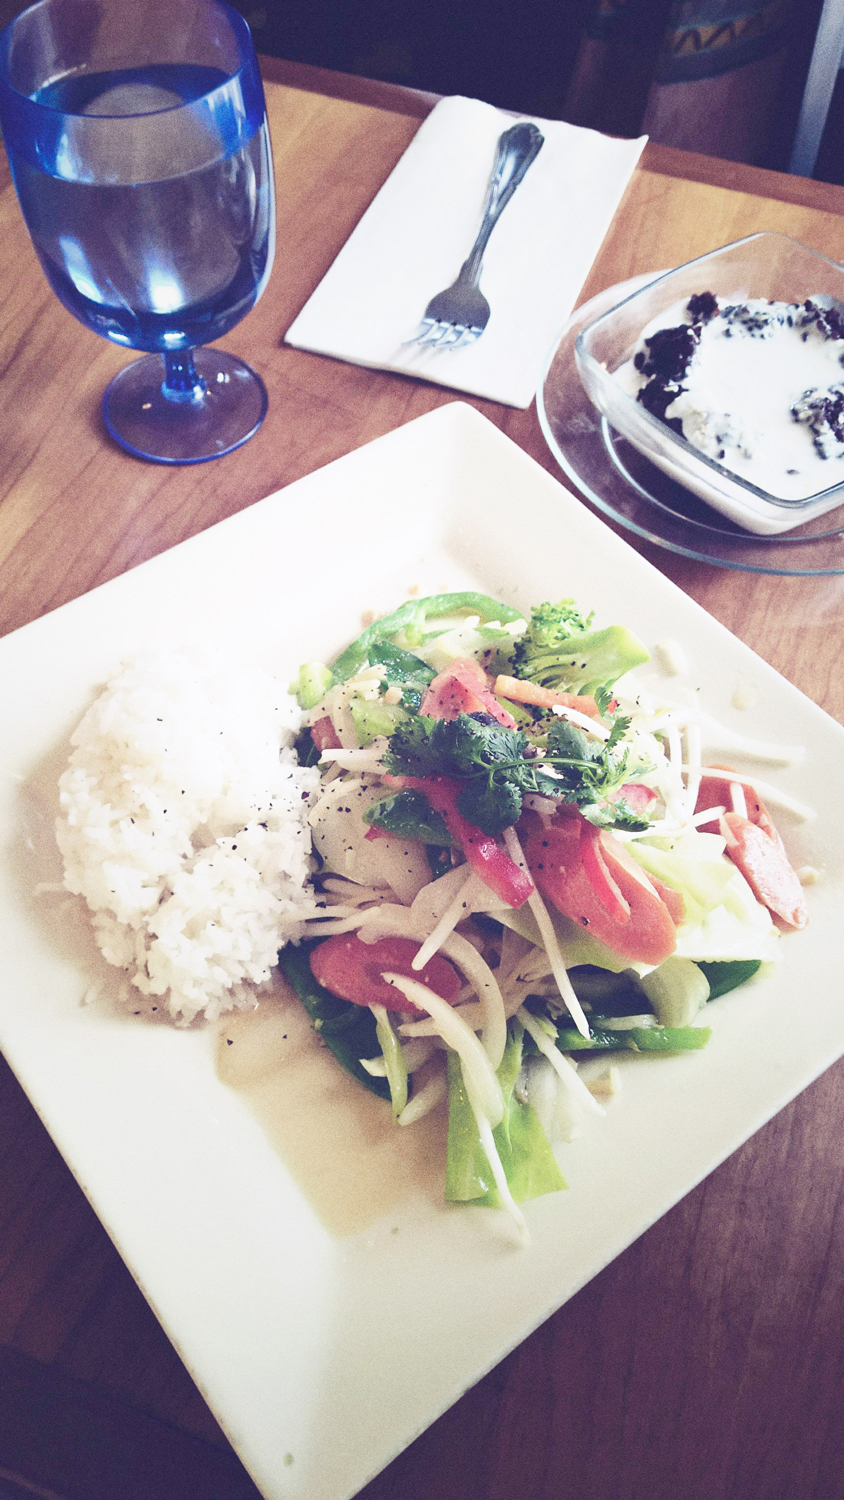 Nattamit Thai Food | Old Town Silverdale, WA